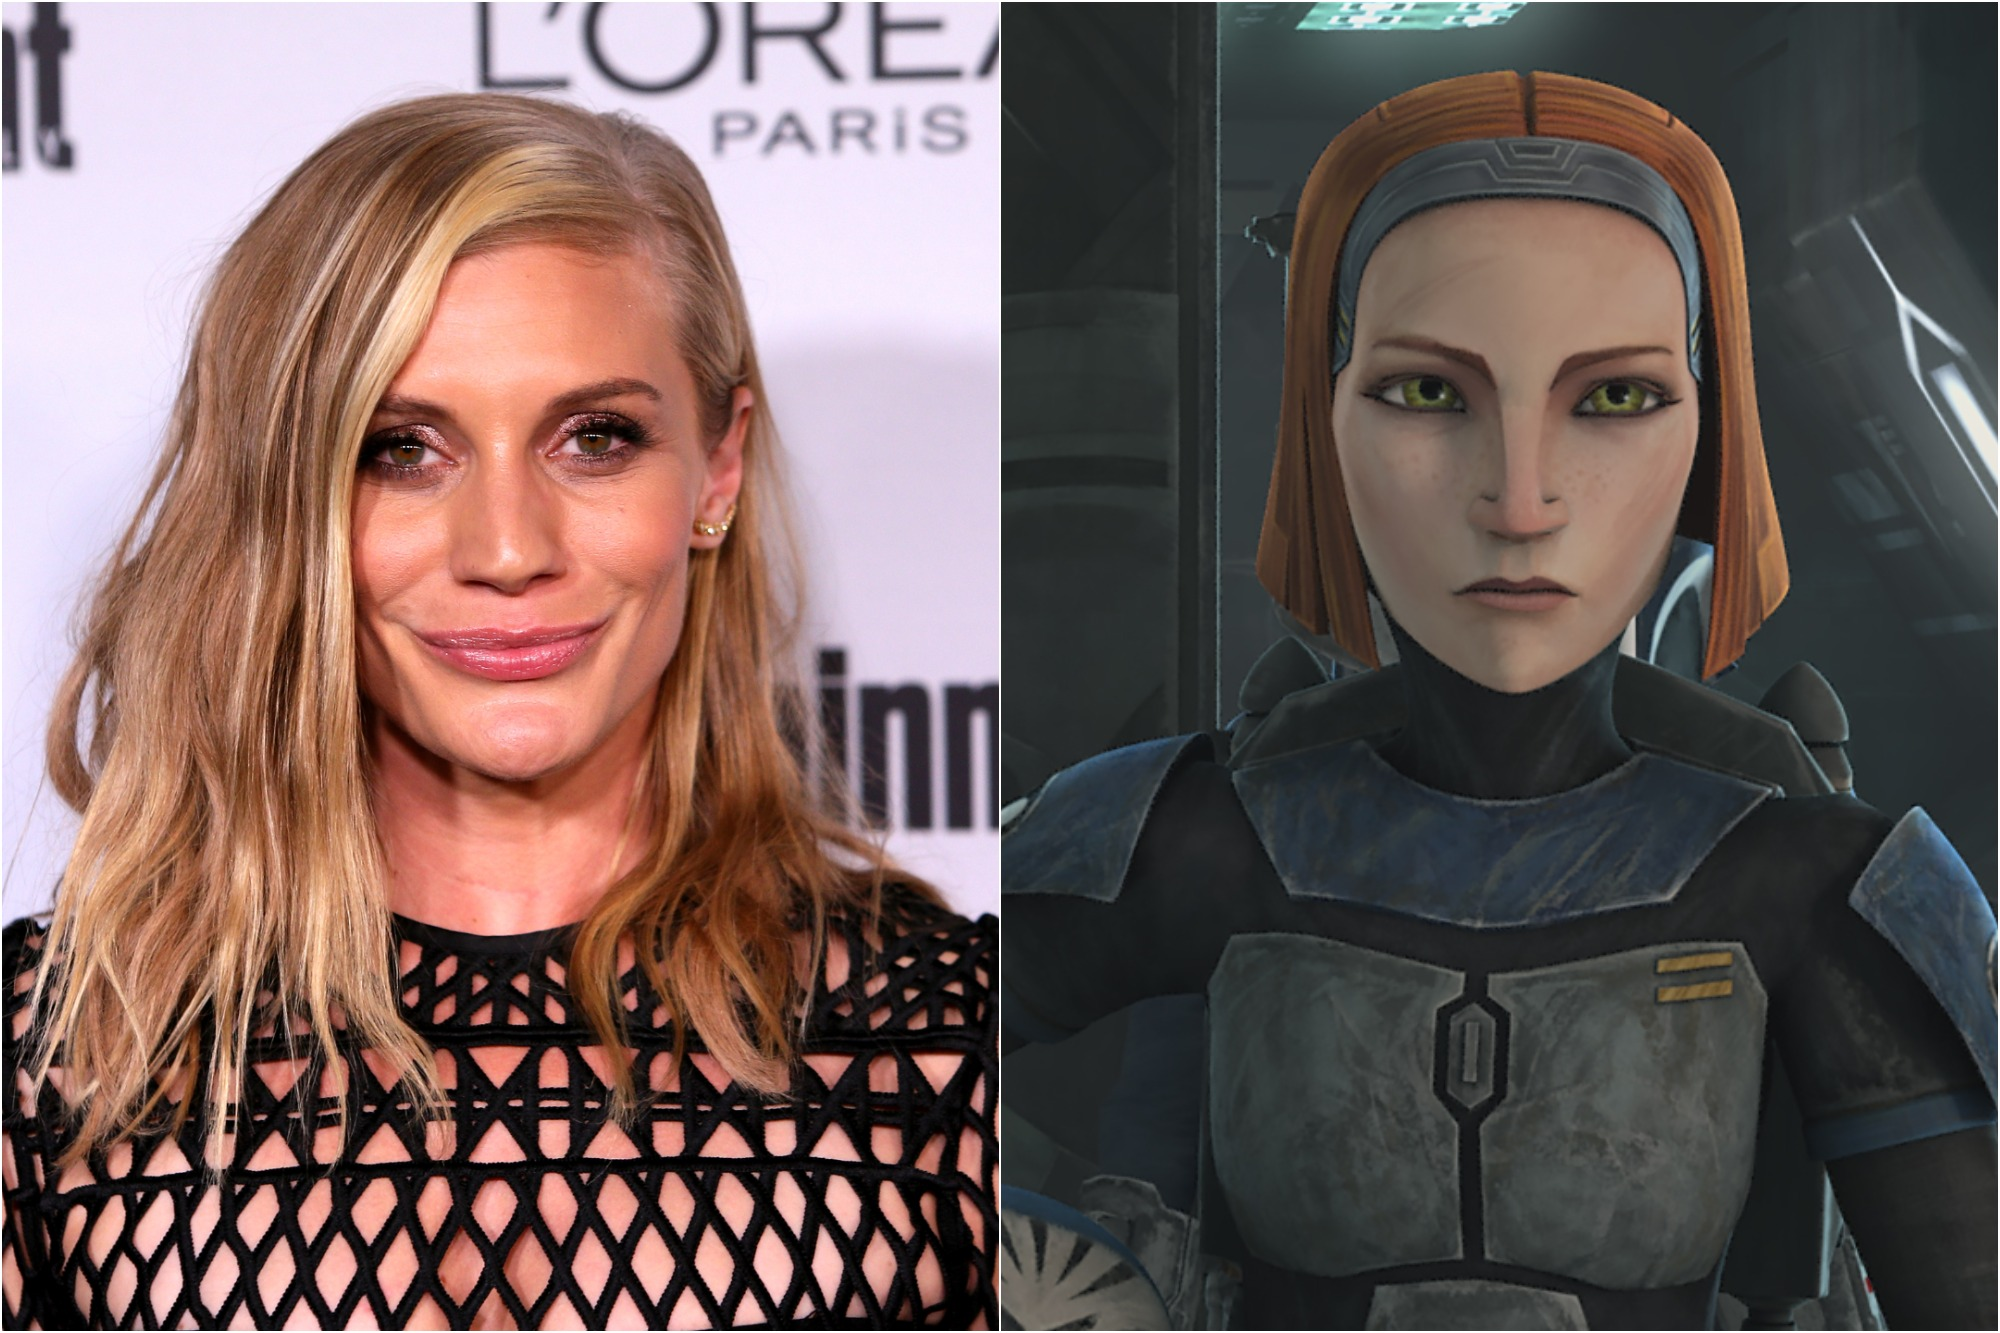 Katee Sackhoff at Entertainment Weekly's 2016 Pre-Emmy Party on Sept. 16, 2016 / Bo-Katan in Season 7 of 'Star Wars: The Clone Wars'